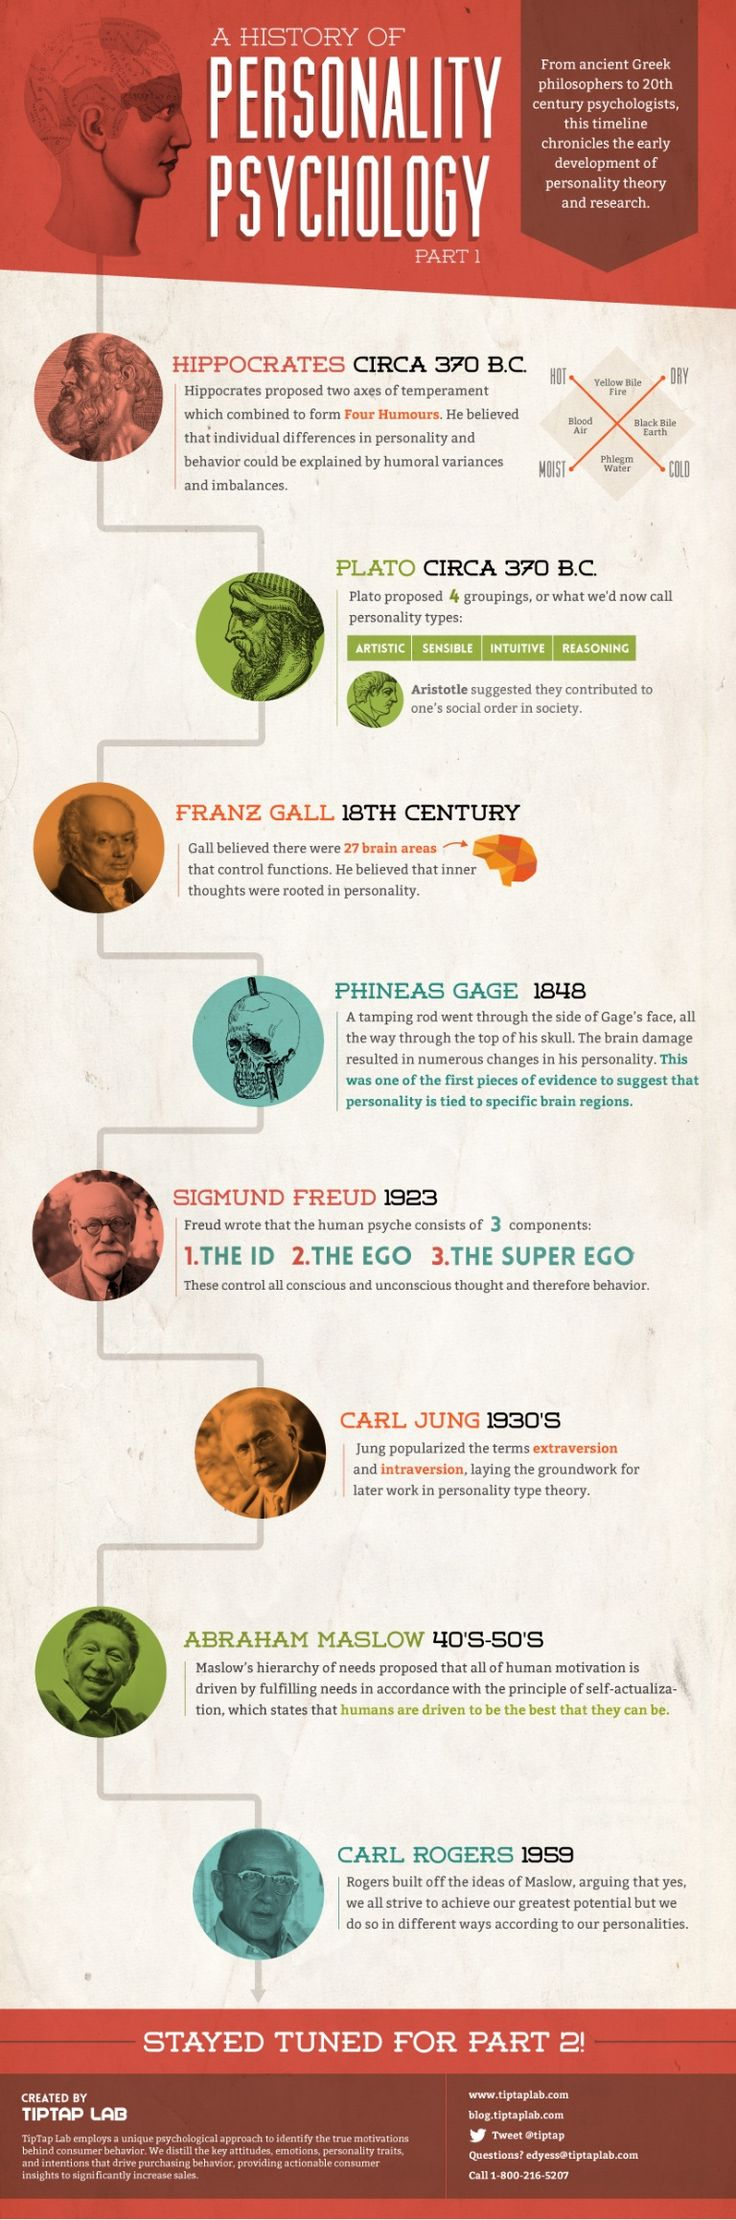 a-history-of-personality-psychology-part-1 by TipTap Lab via Slideshare